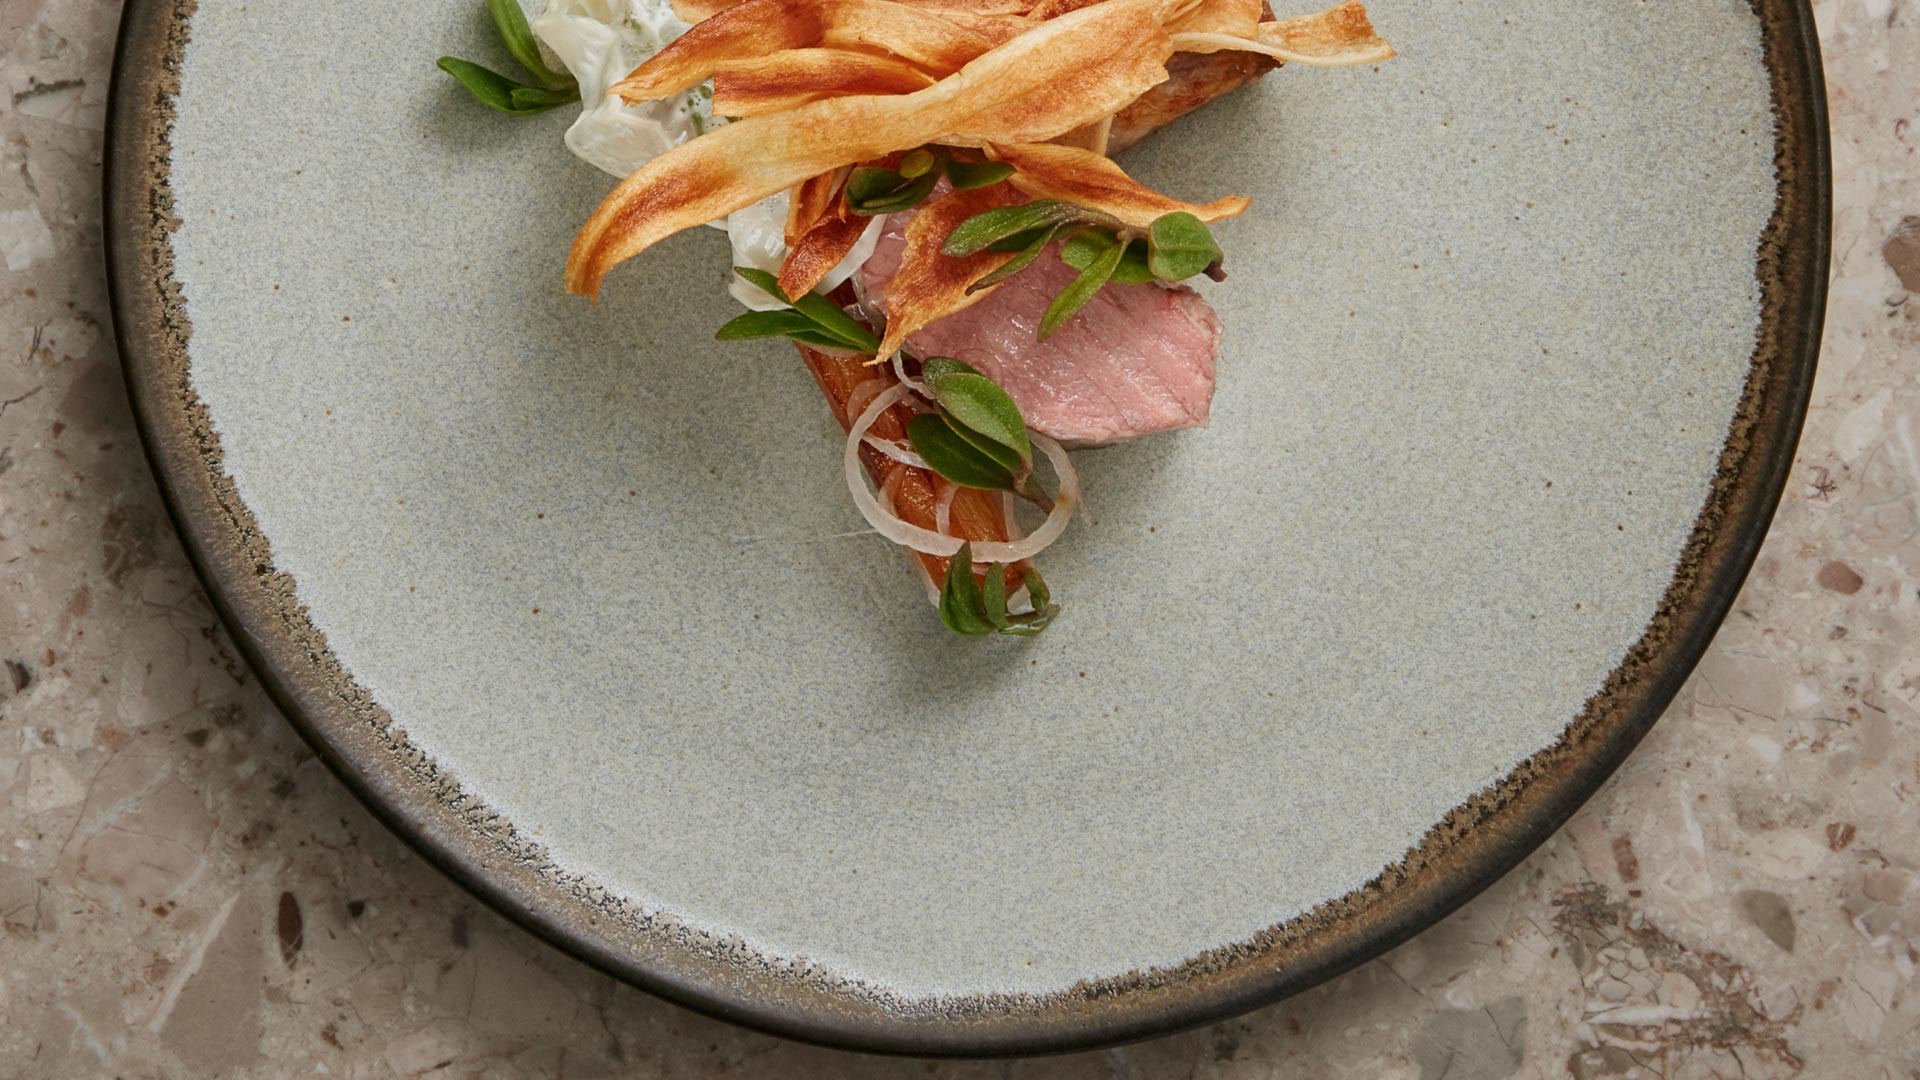 Lamb, salsify, king oyster, pickled shallot and milk skin